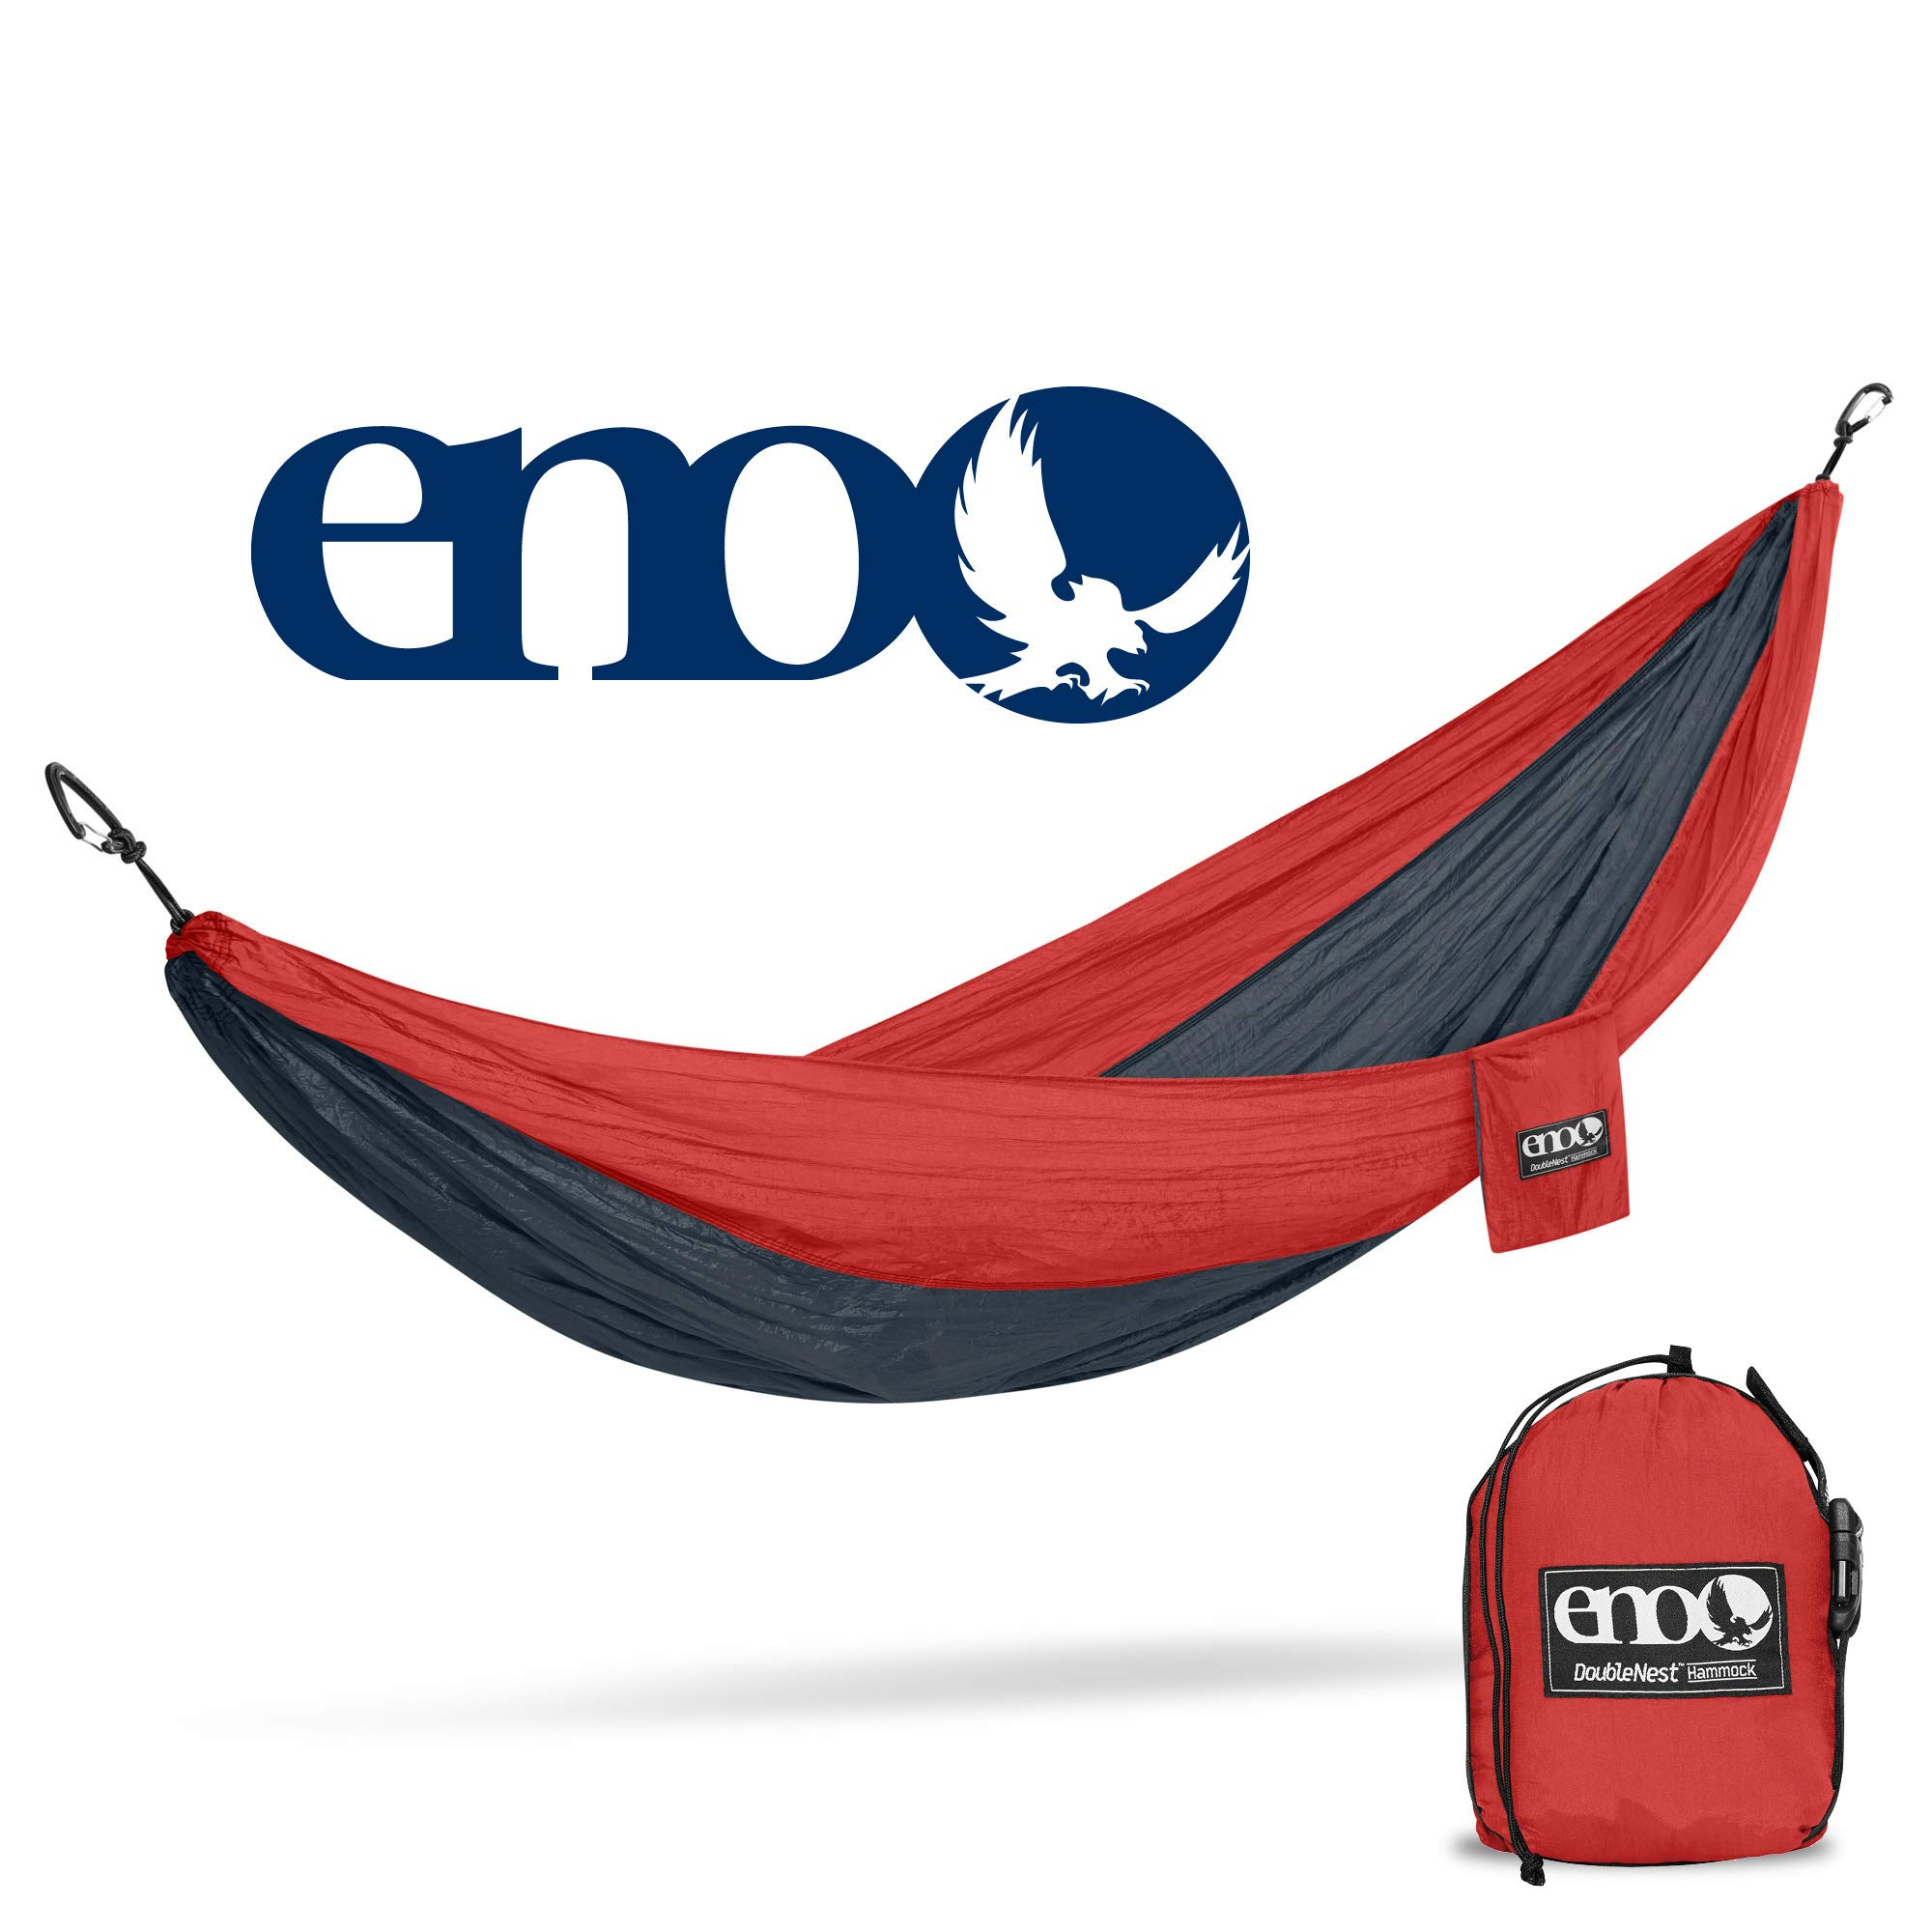 ENO - Eagles Nest Outfitters DoubleNest Hammock, Portable Hammock for Two, Red/Charcoal by ENO